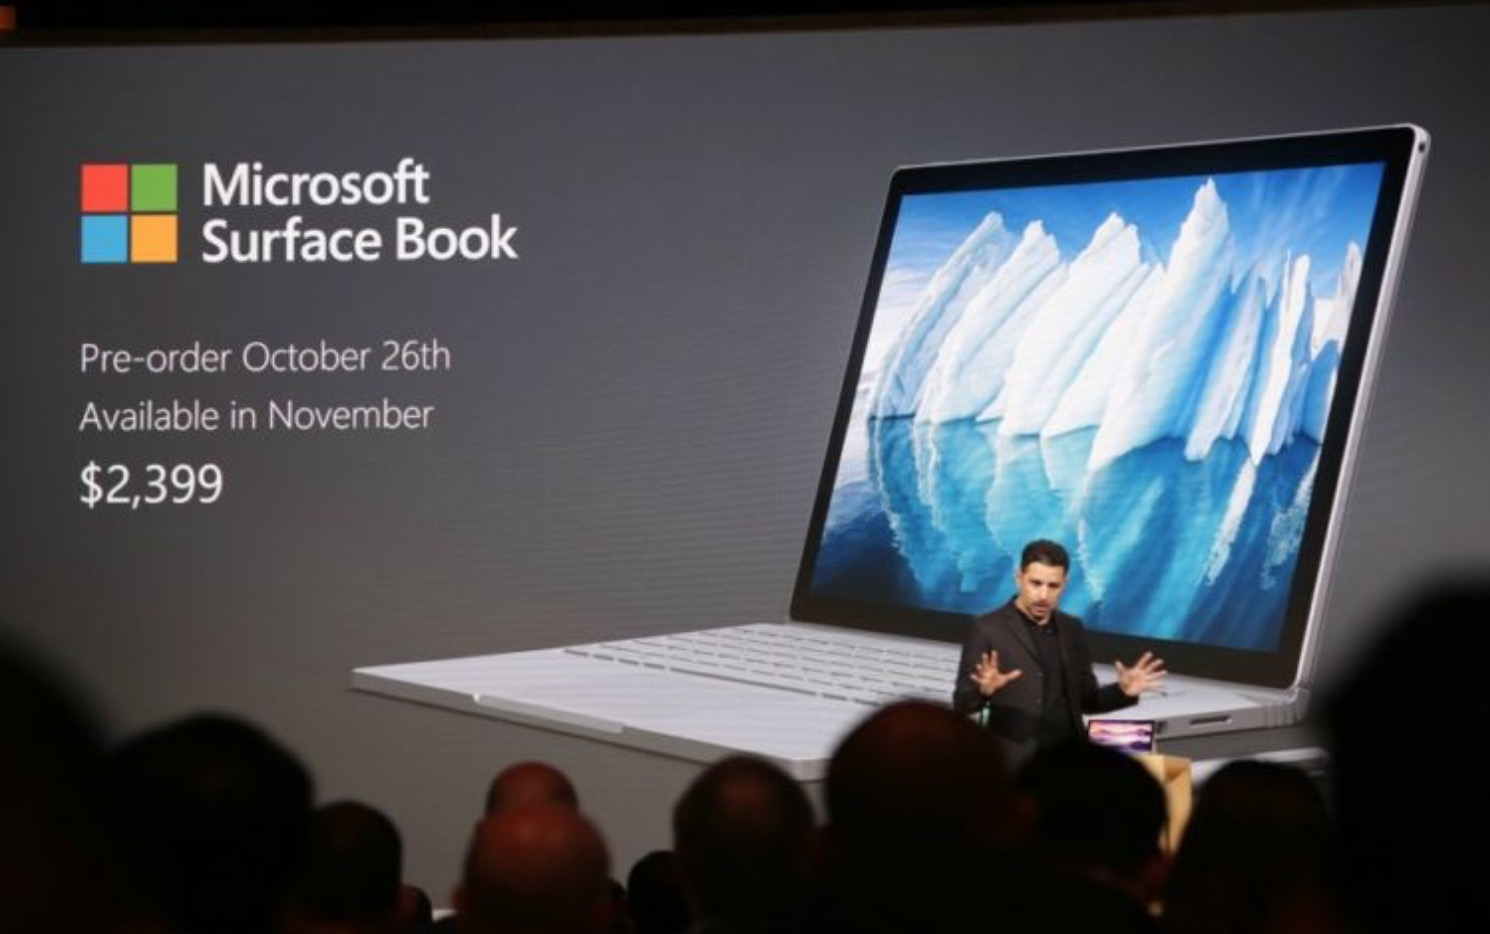 Microsoft Surface i7 Book prezzo